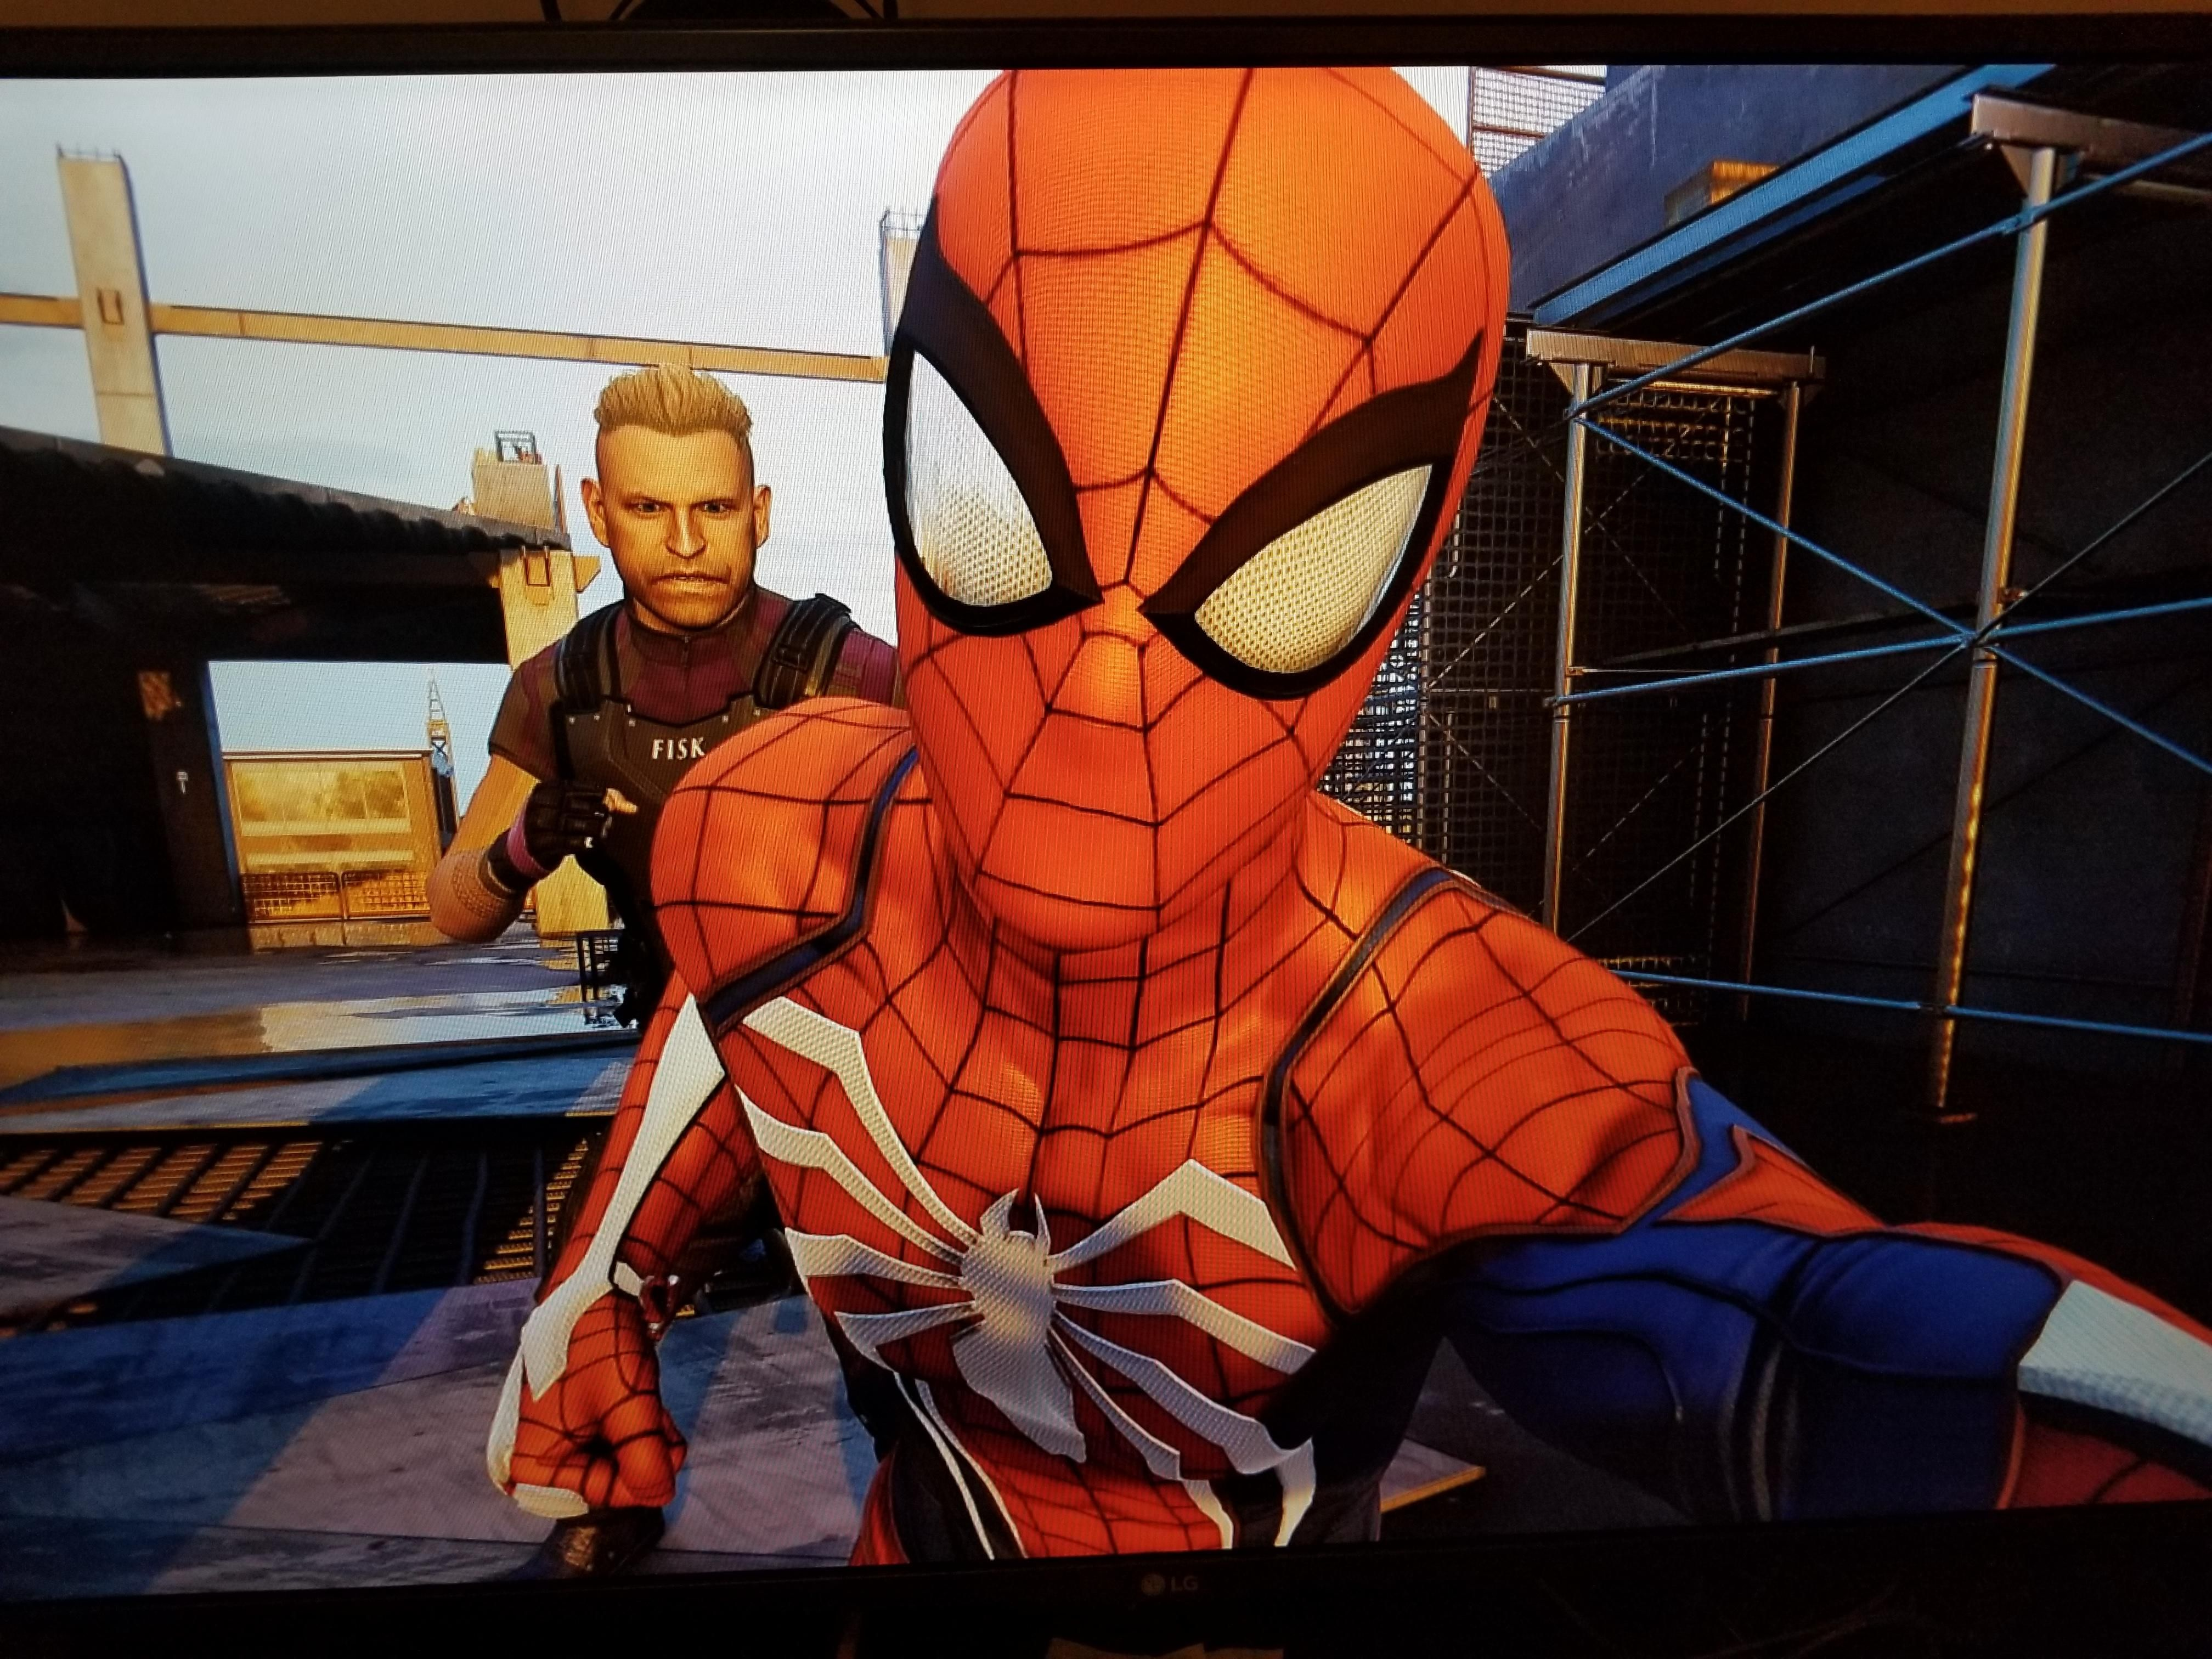 Spiderman casually taking a selfie during a fight